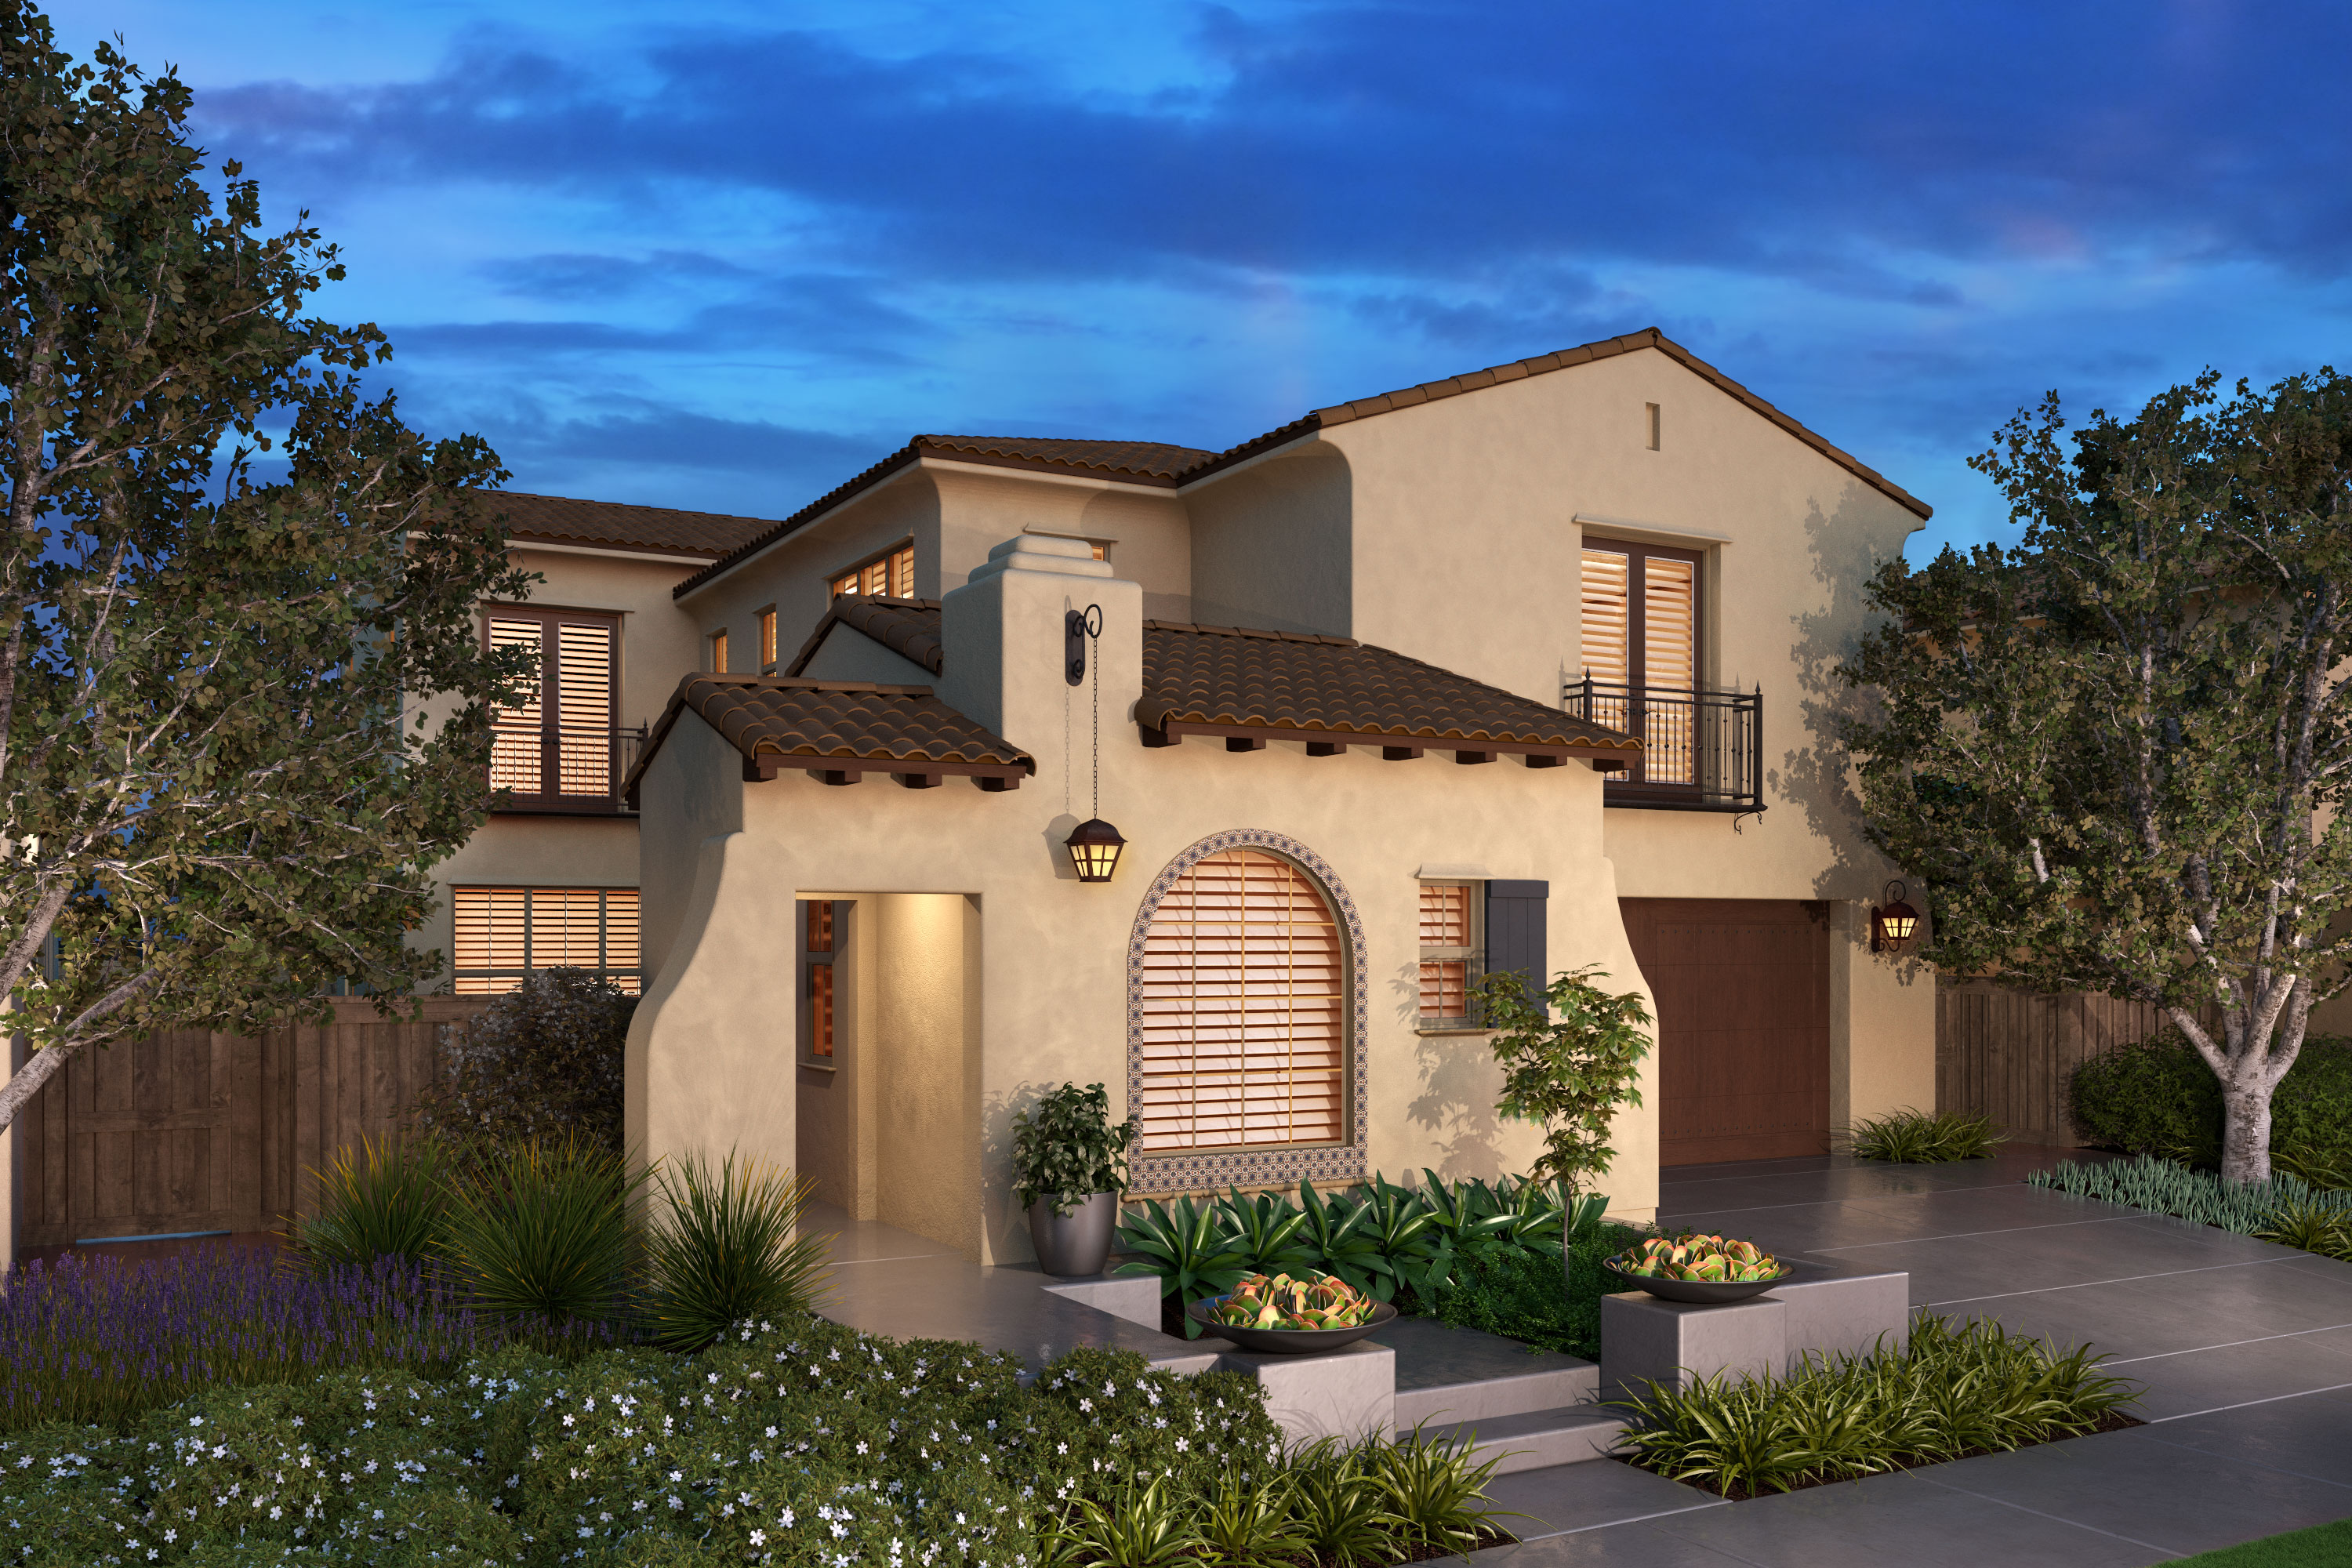 Palo Verde New Homes in Carlsbad